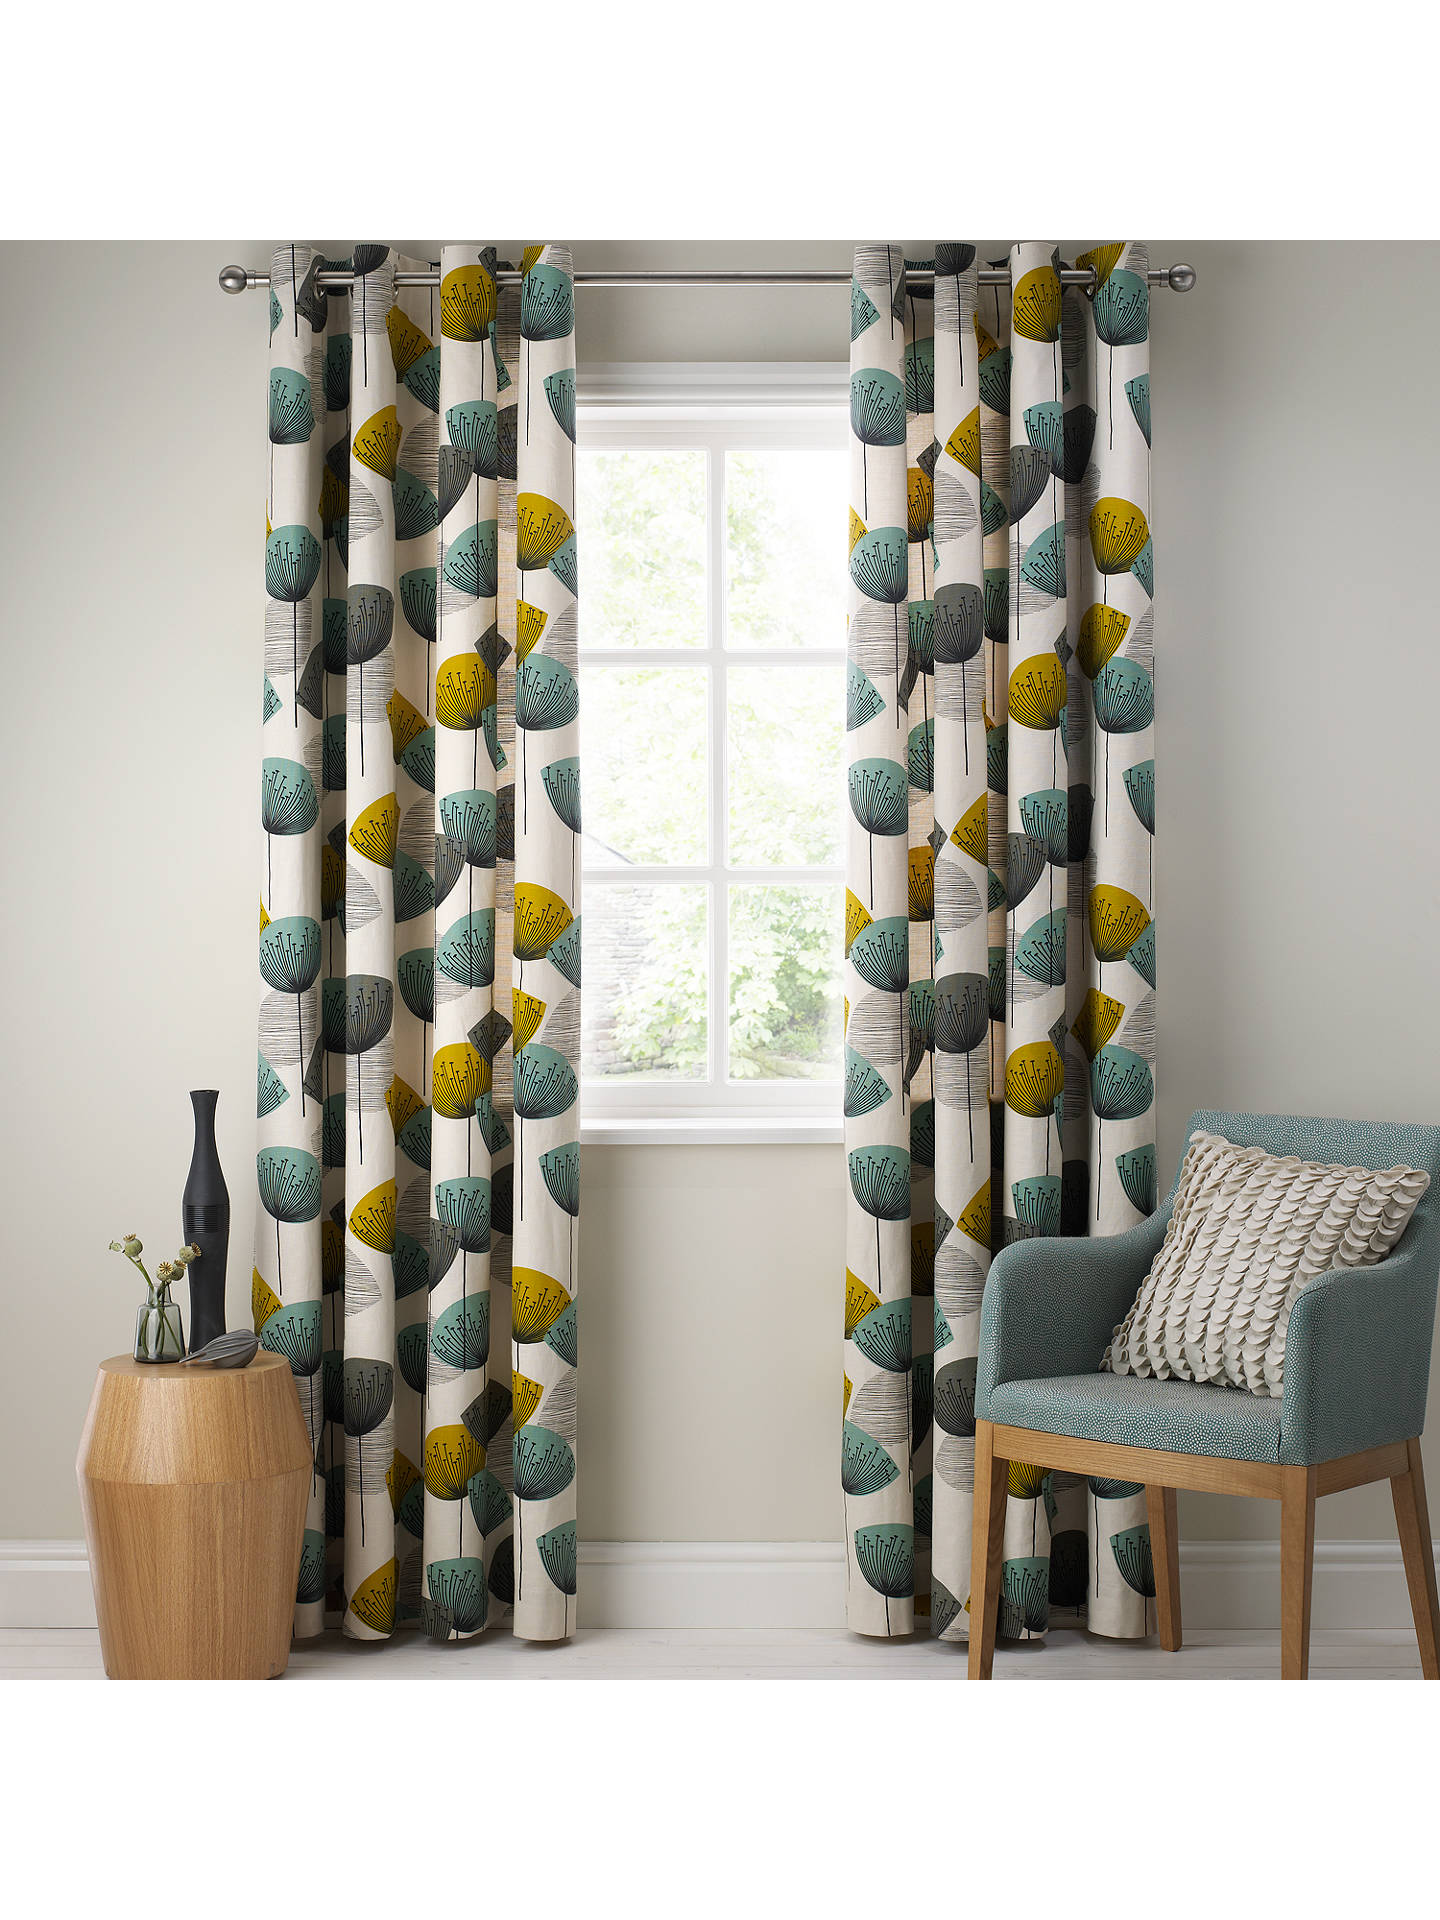 Sanderson Dandelion Clocks Pair Lined Eyelet Curtains Aqua